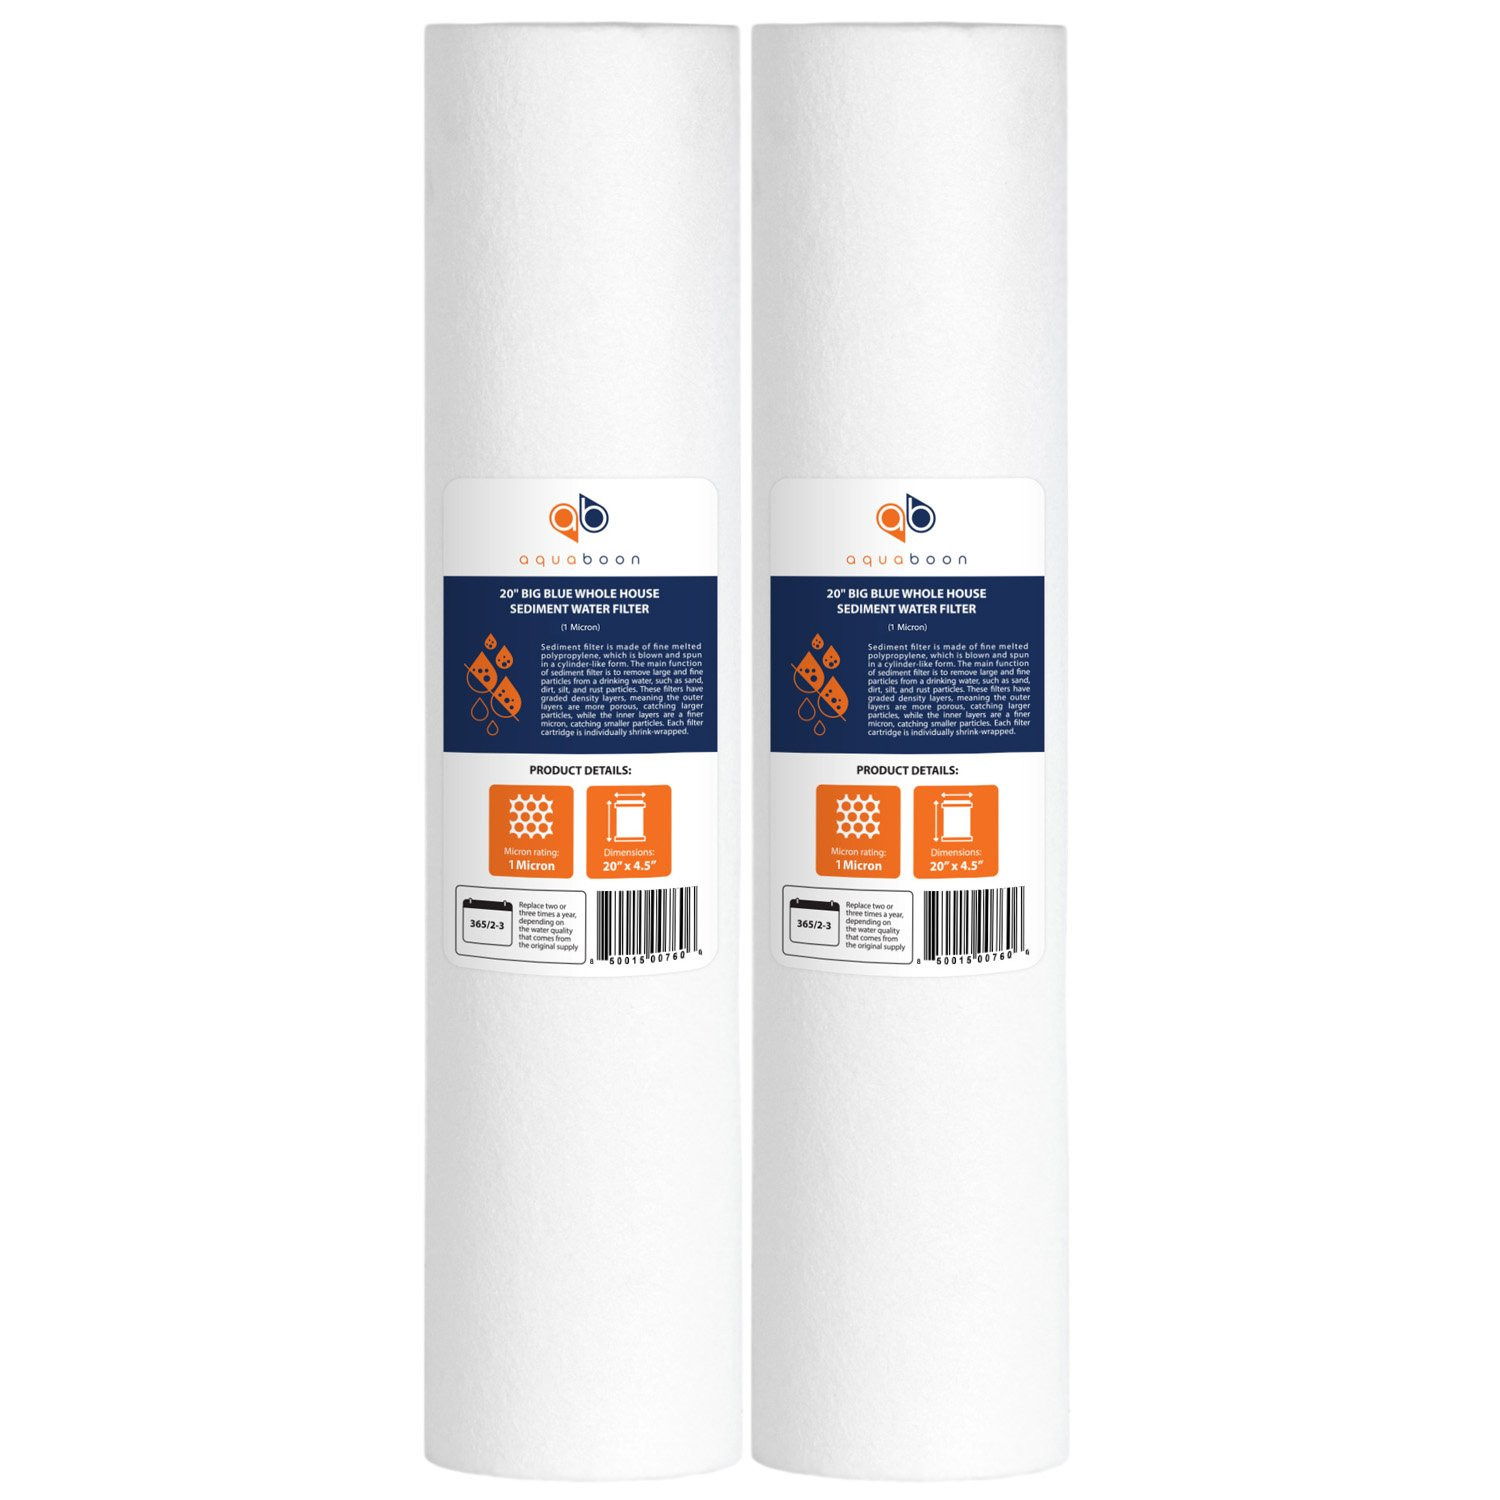 20 Big Blue 1 MICRON Whole House Water Filter 4.5 x 20 by CFS pack of 2 Pack of 2